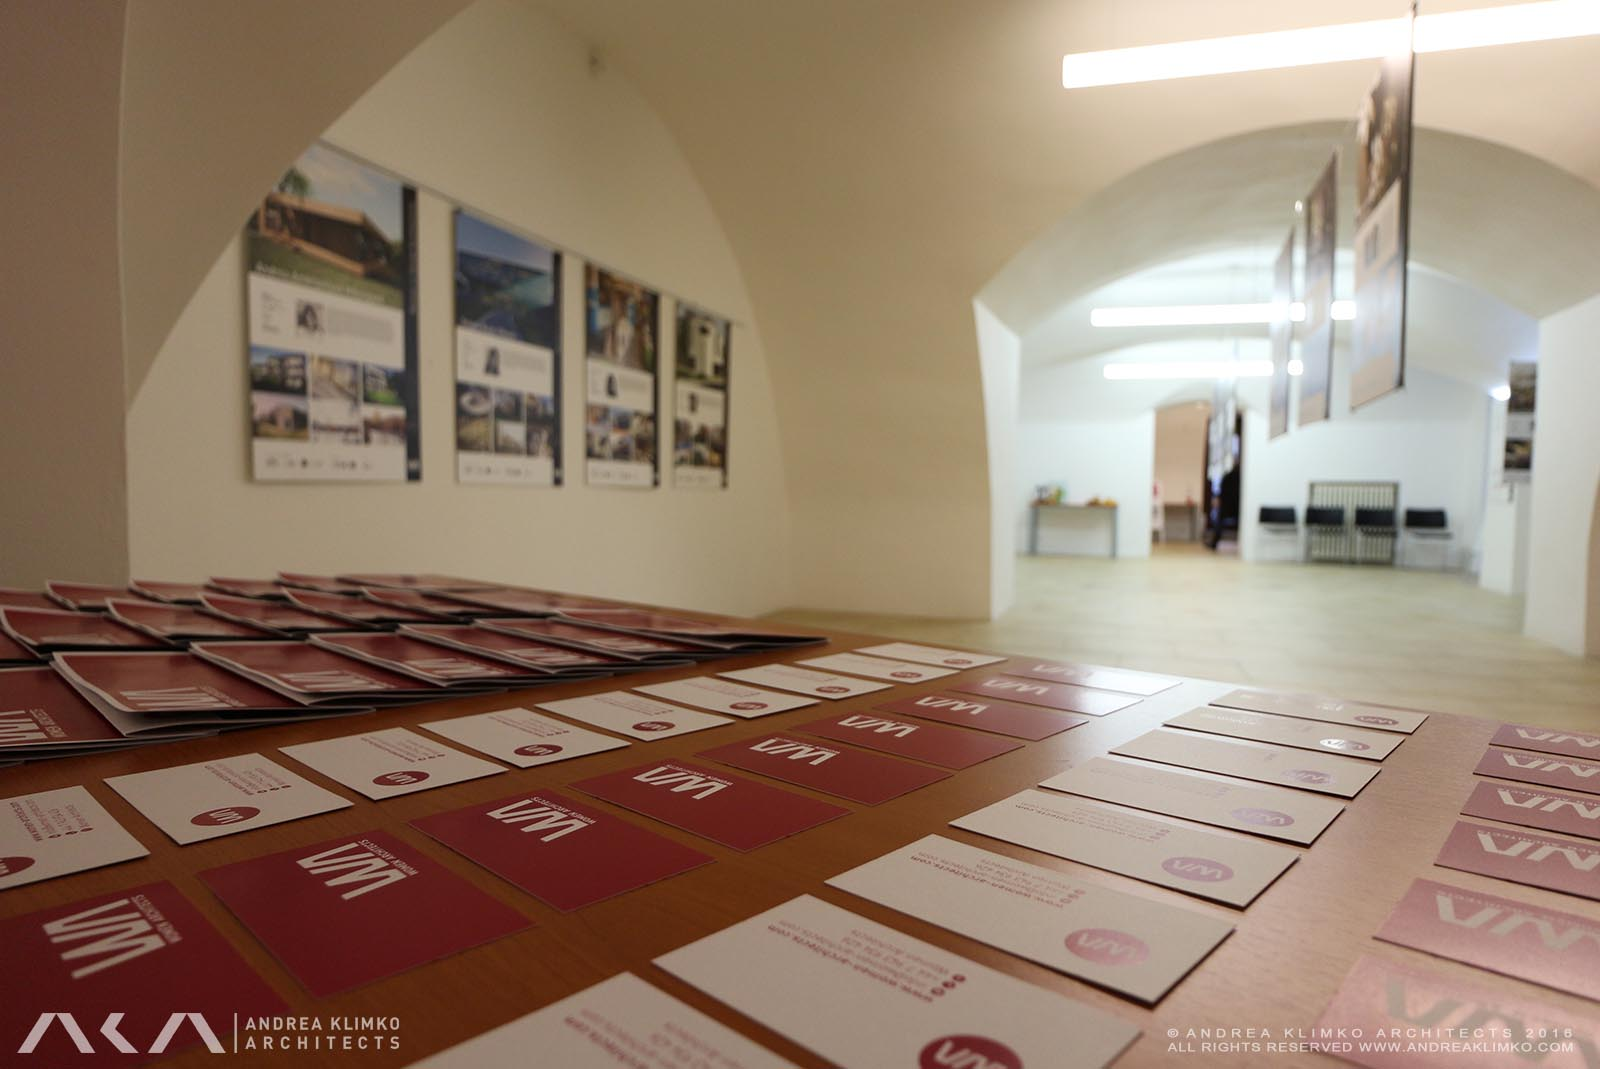 WOMEN ARCHITECTS IN SLOVAKIA INTRODUCE THEIR WORK – Andrea